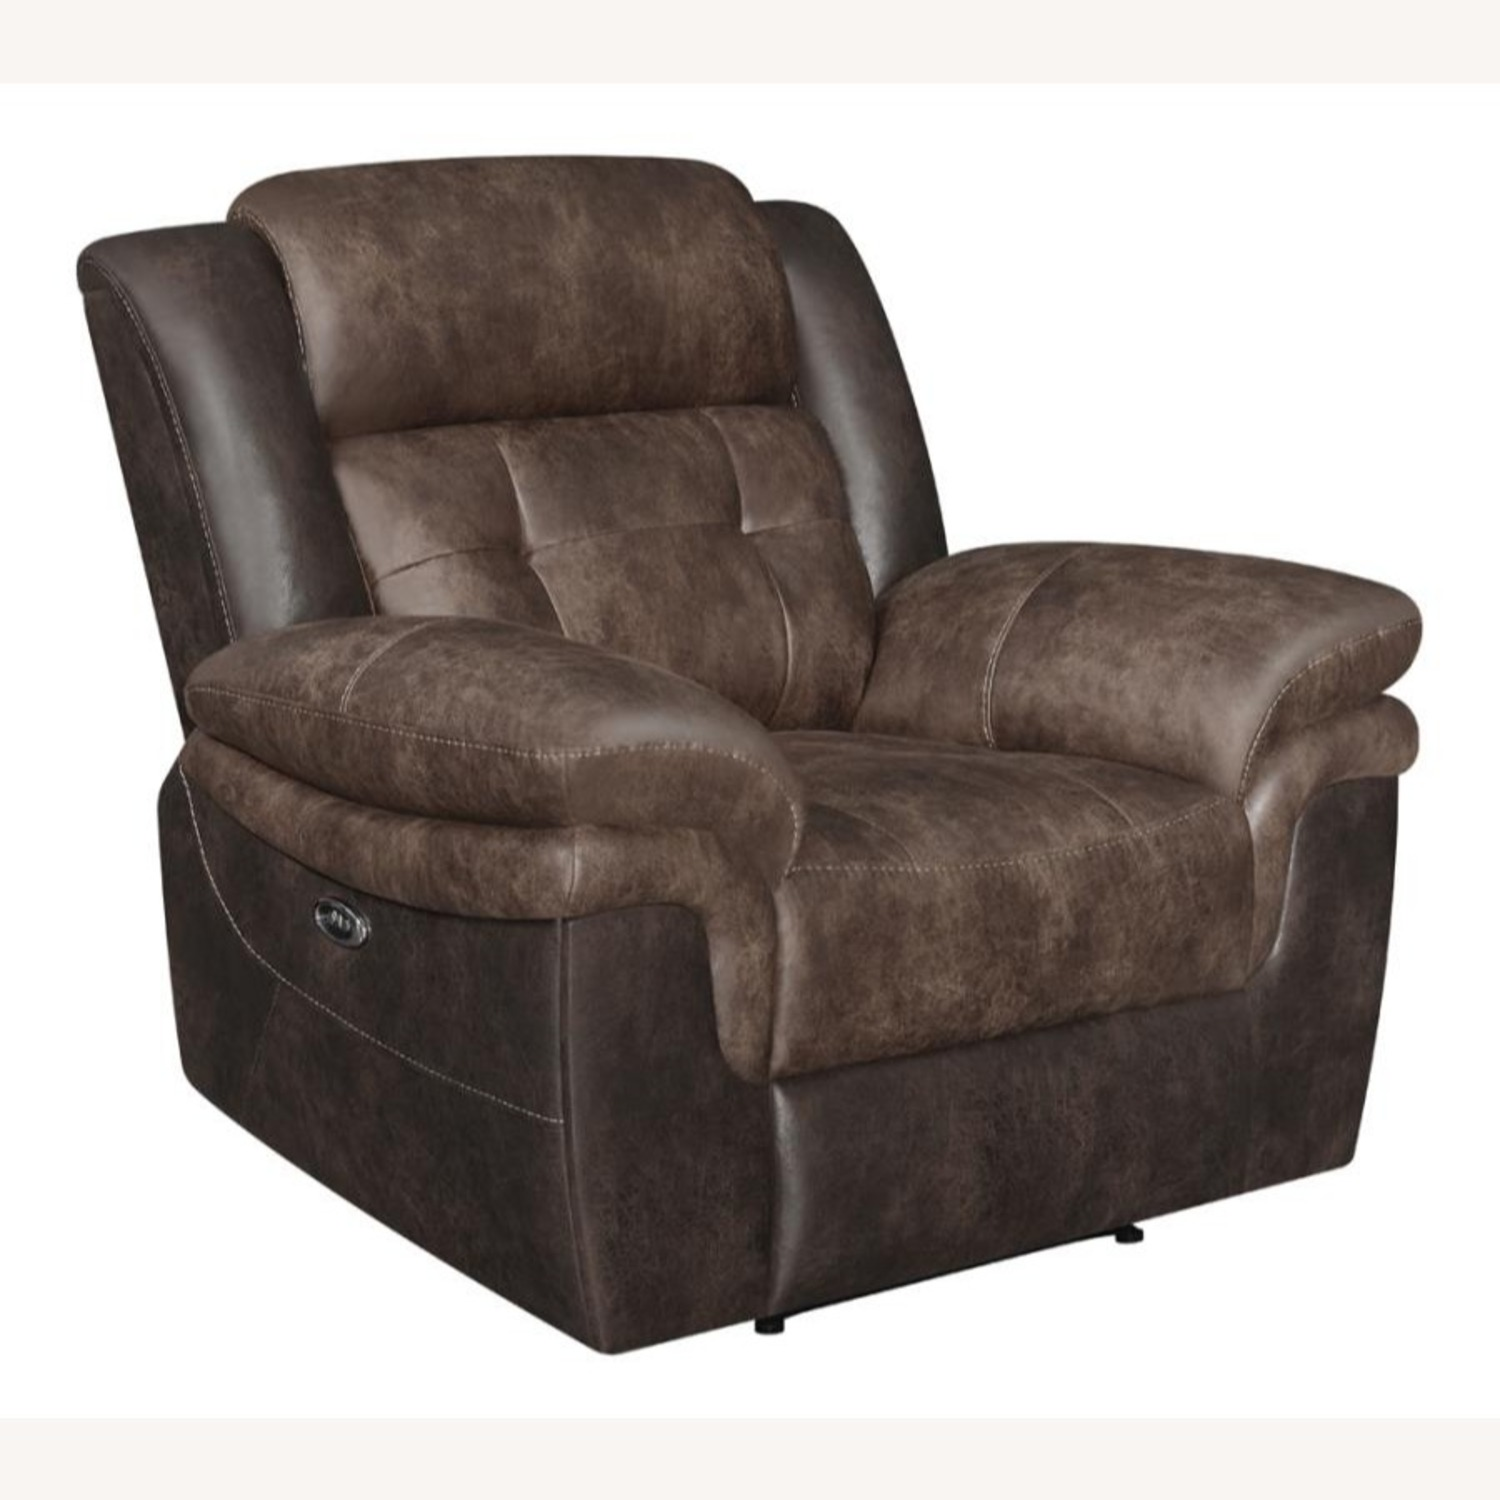 Power Recliner W/ Power Outlet In Chocolate Finish - image-0